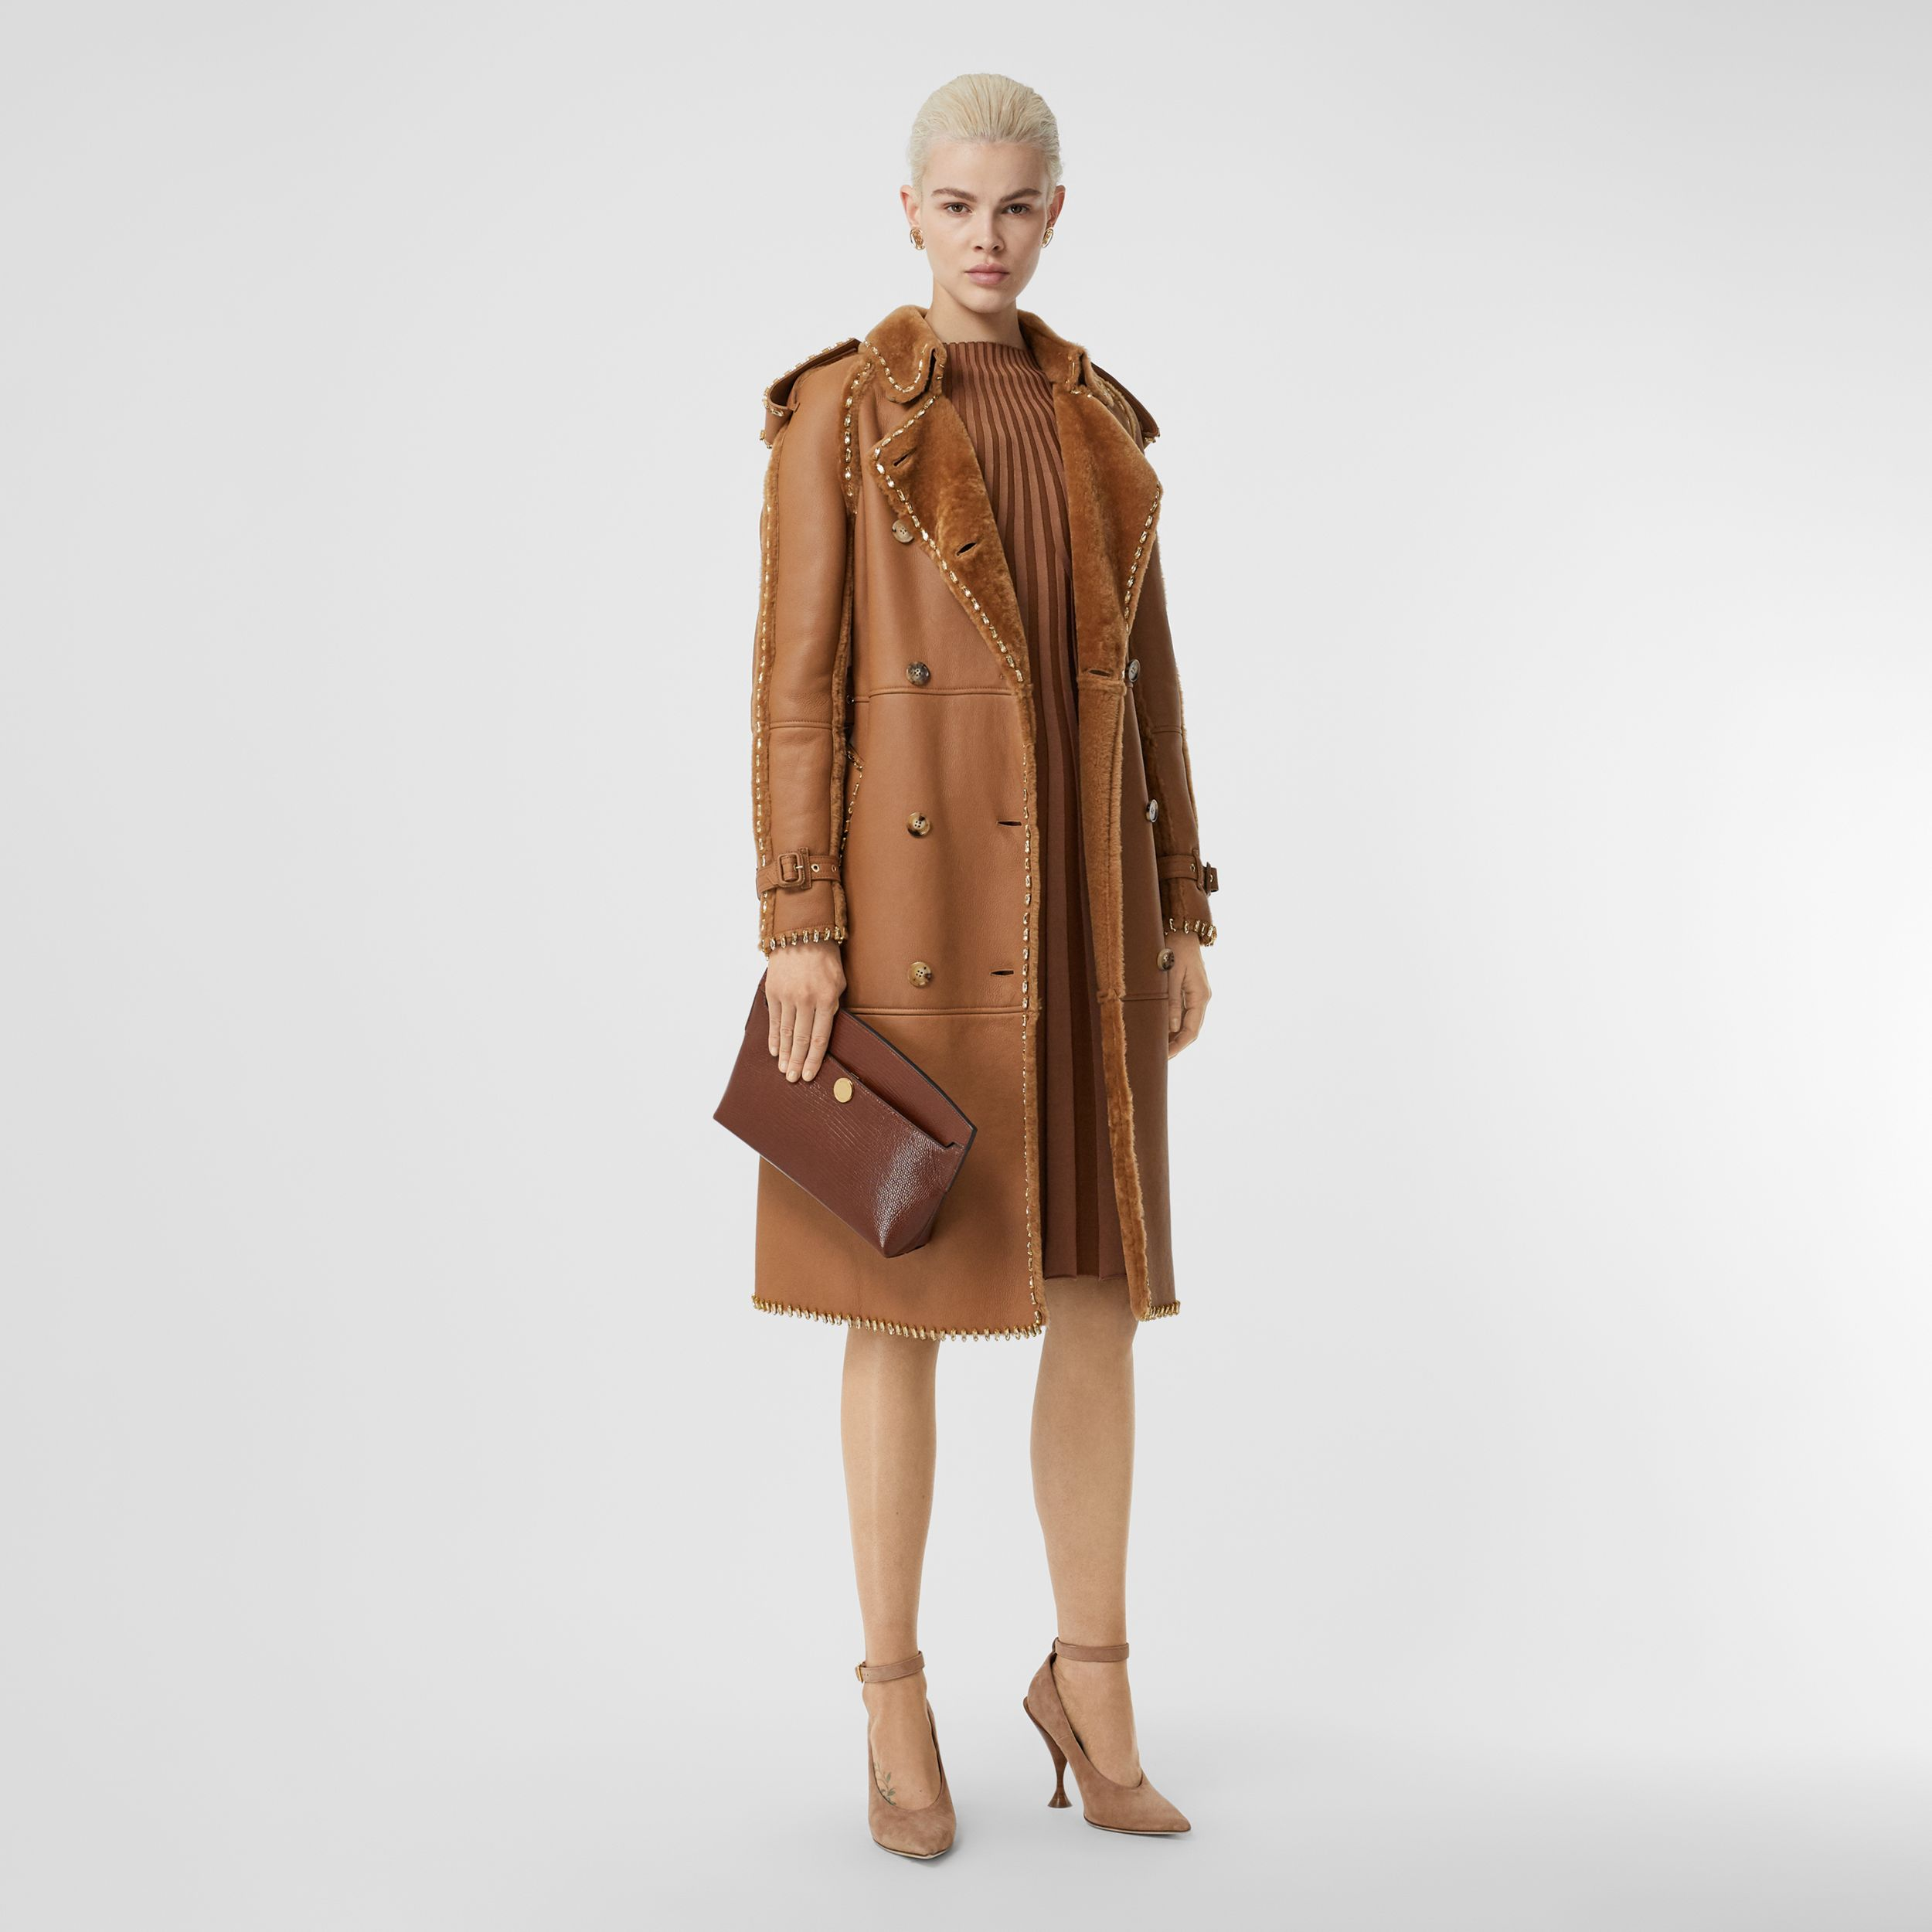 Embellished Shearling Trench Coat in Warm Camel - Women | Burberry Australia - 1